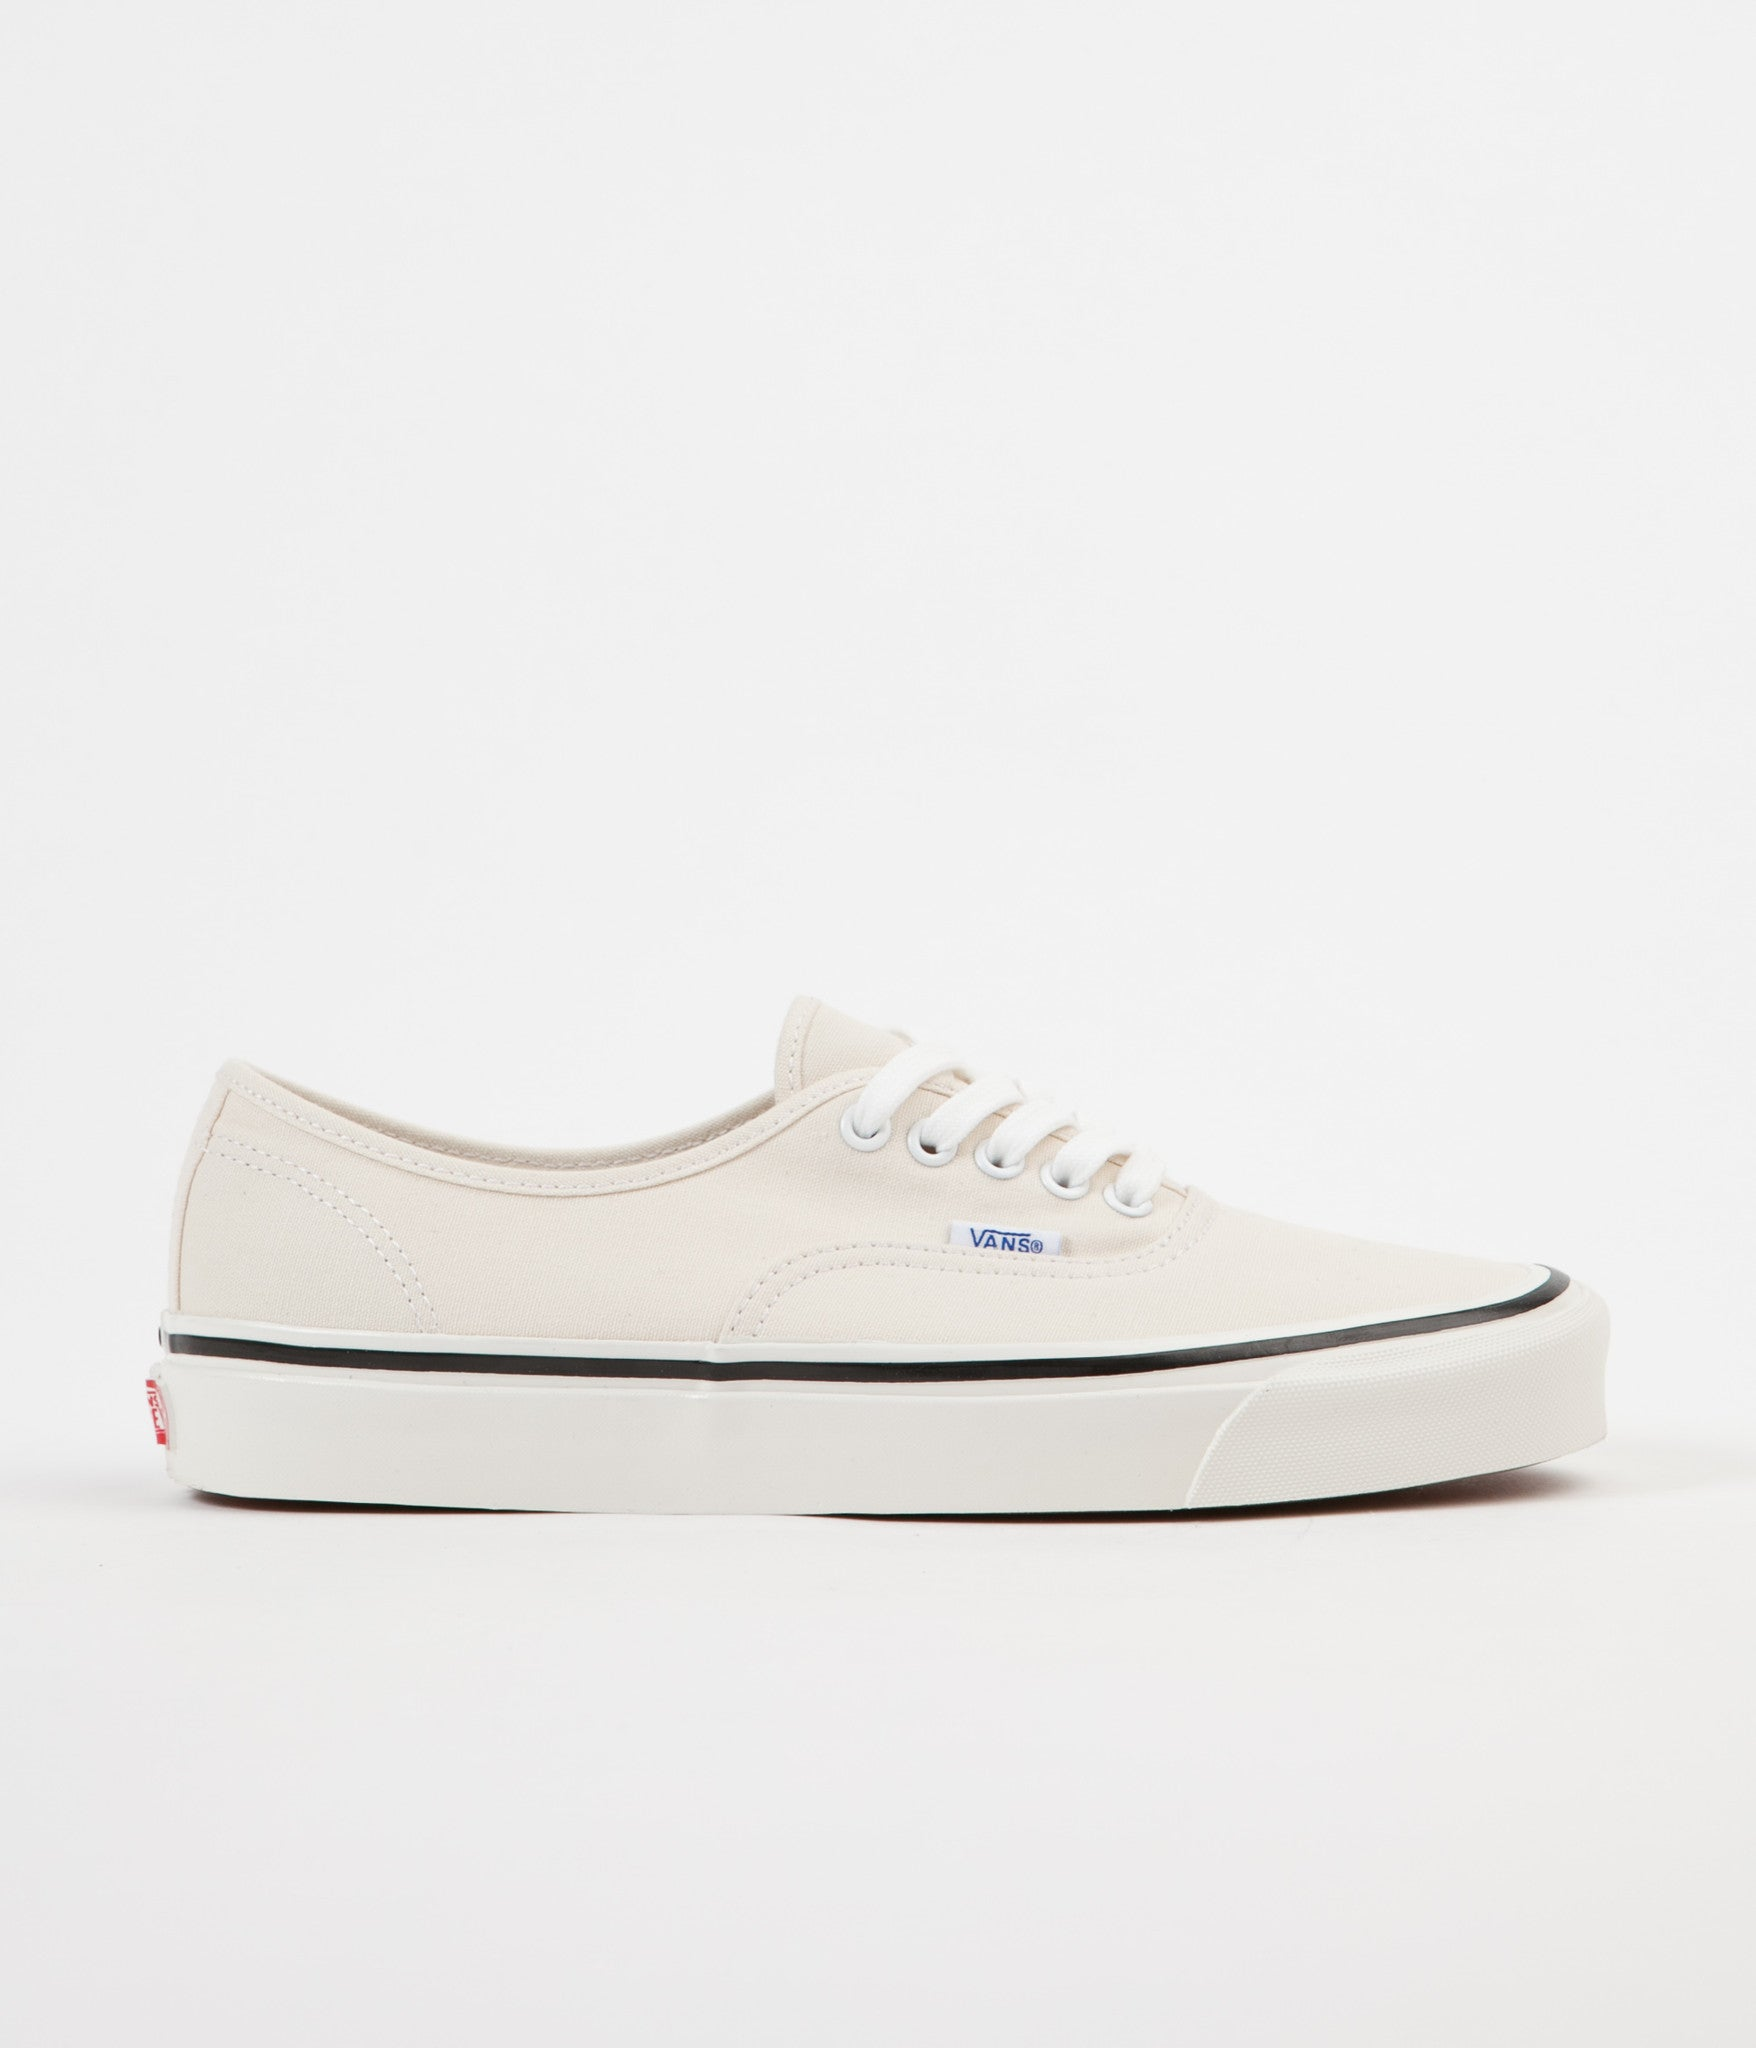 Vans Authentic 44 DX Anaheim Factory Shoes - Classic White